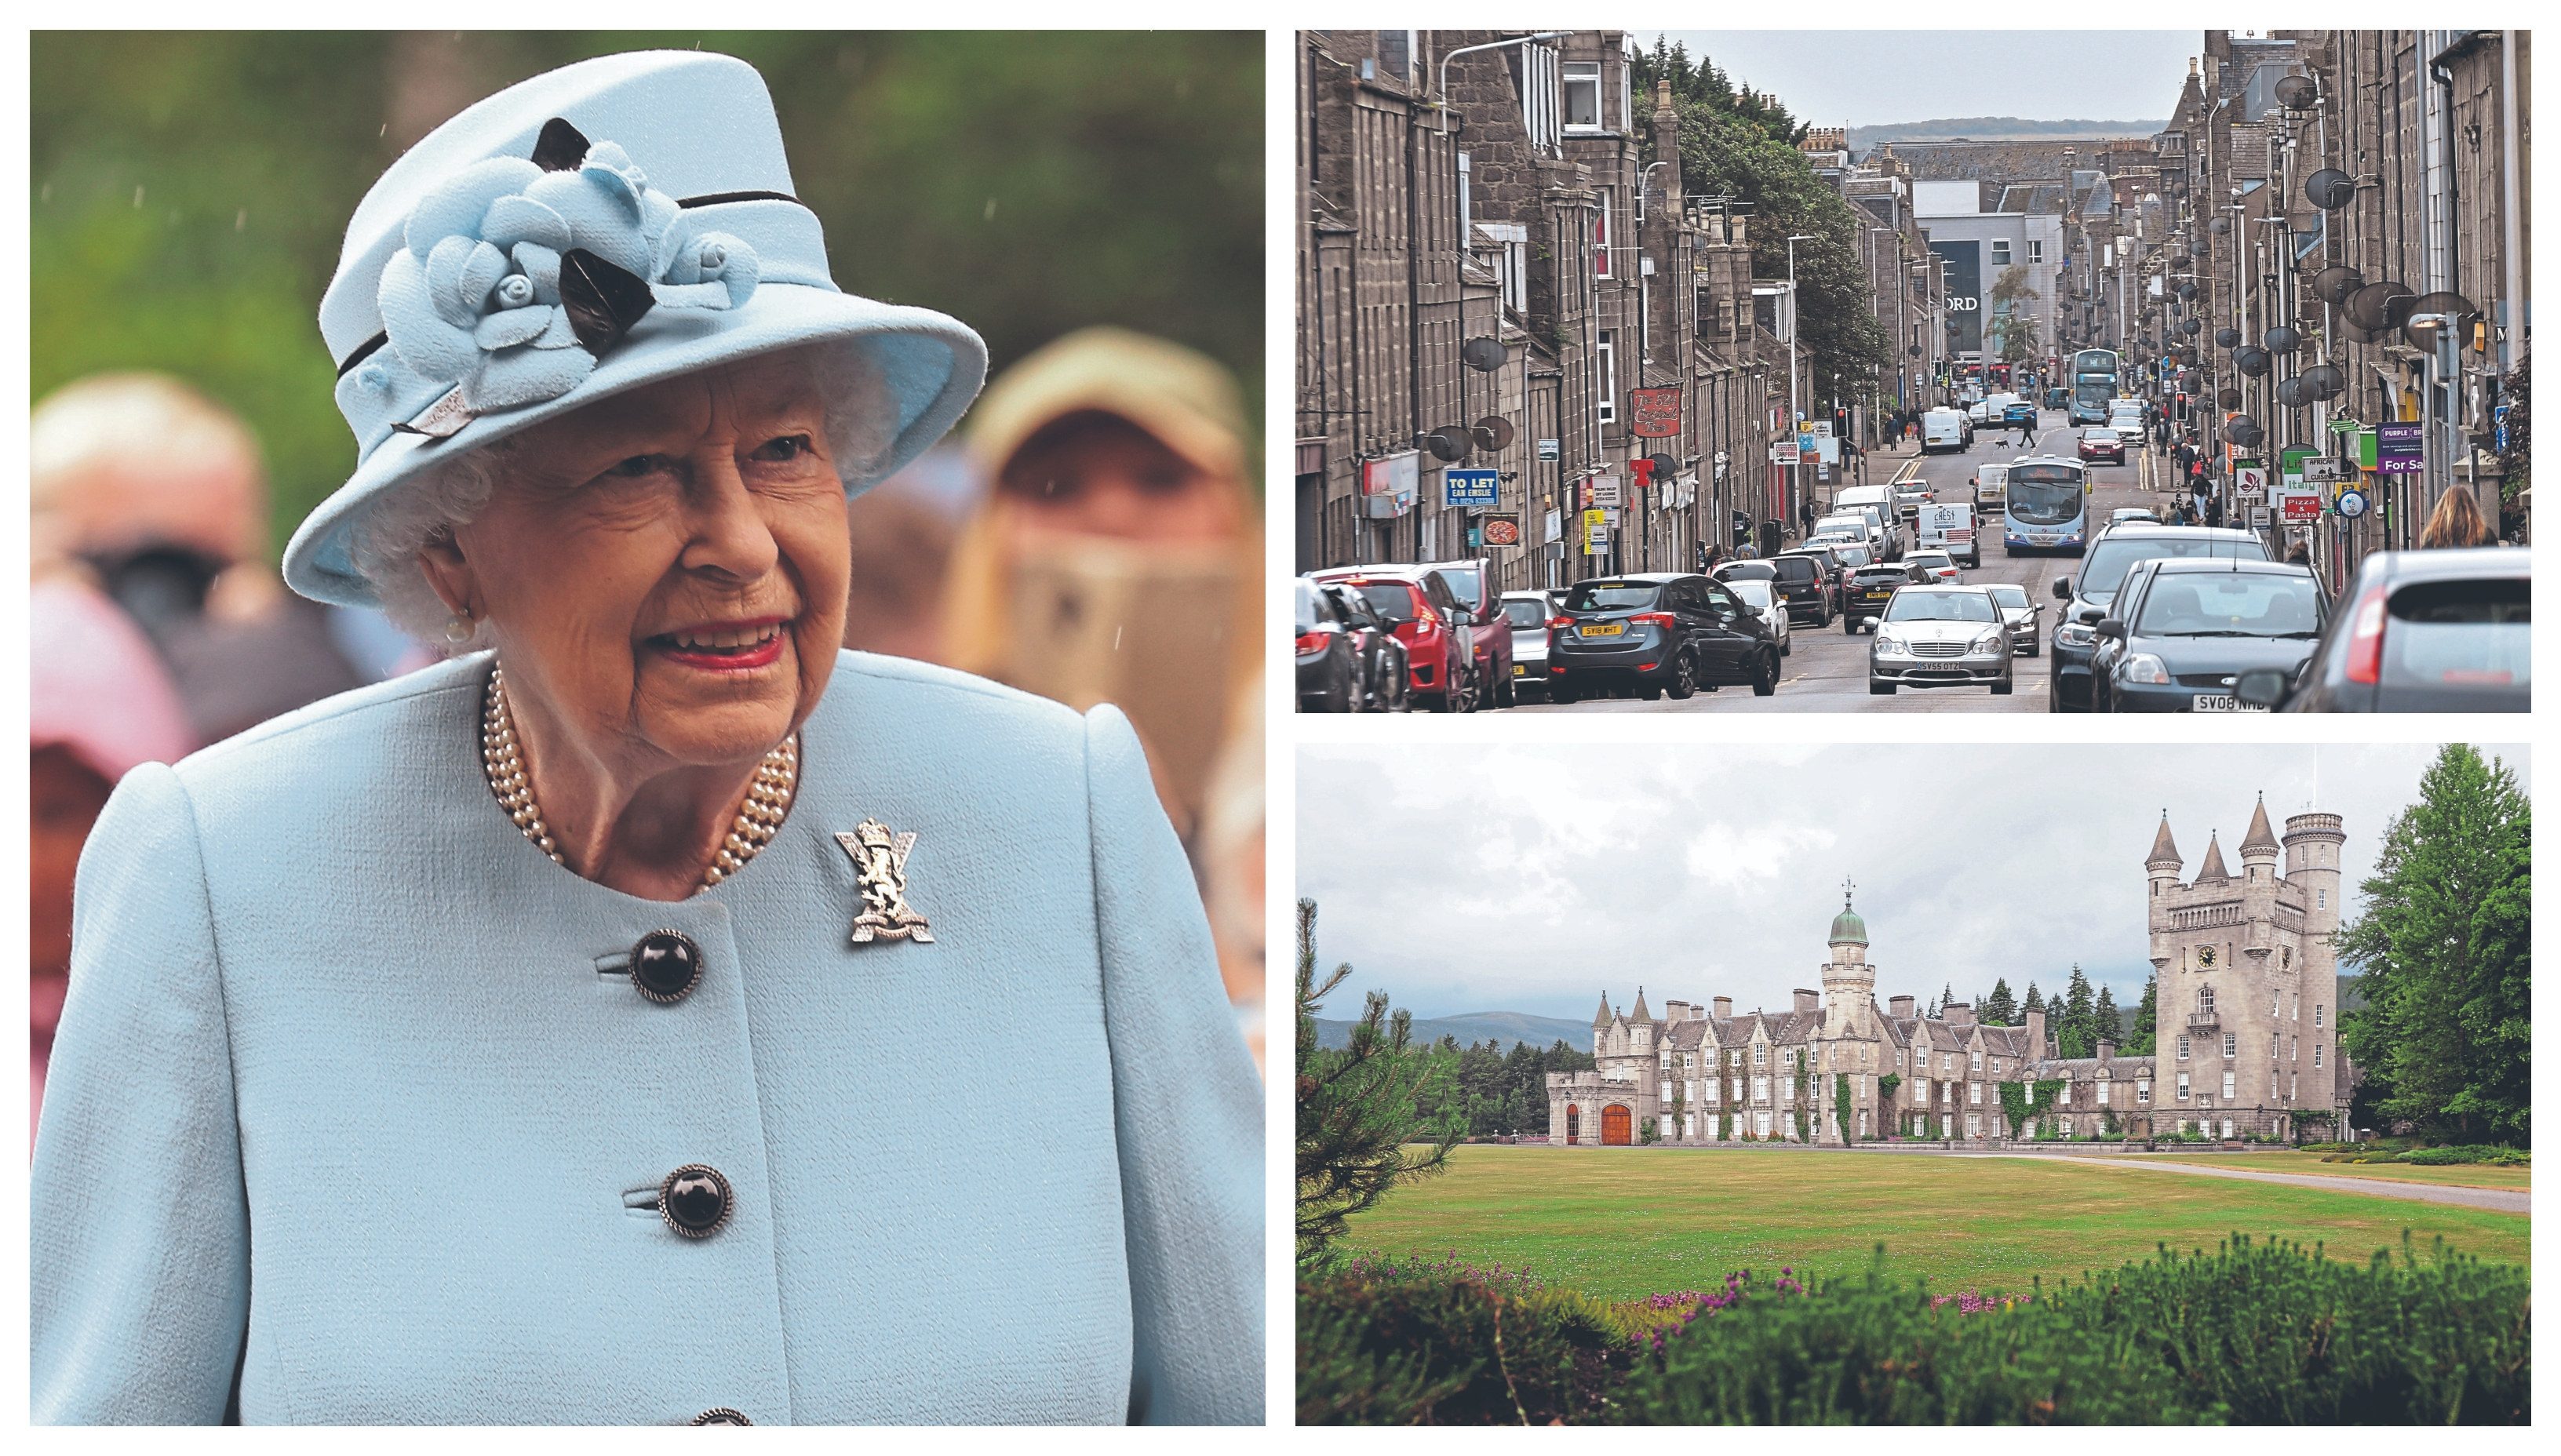 Police vowed to carry out high-visibility patrols of George Street in Aberdeen, top right, but security for the Queen's stay at Balmoral has taken priority.